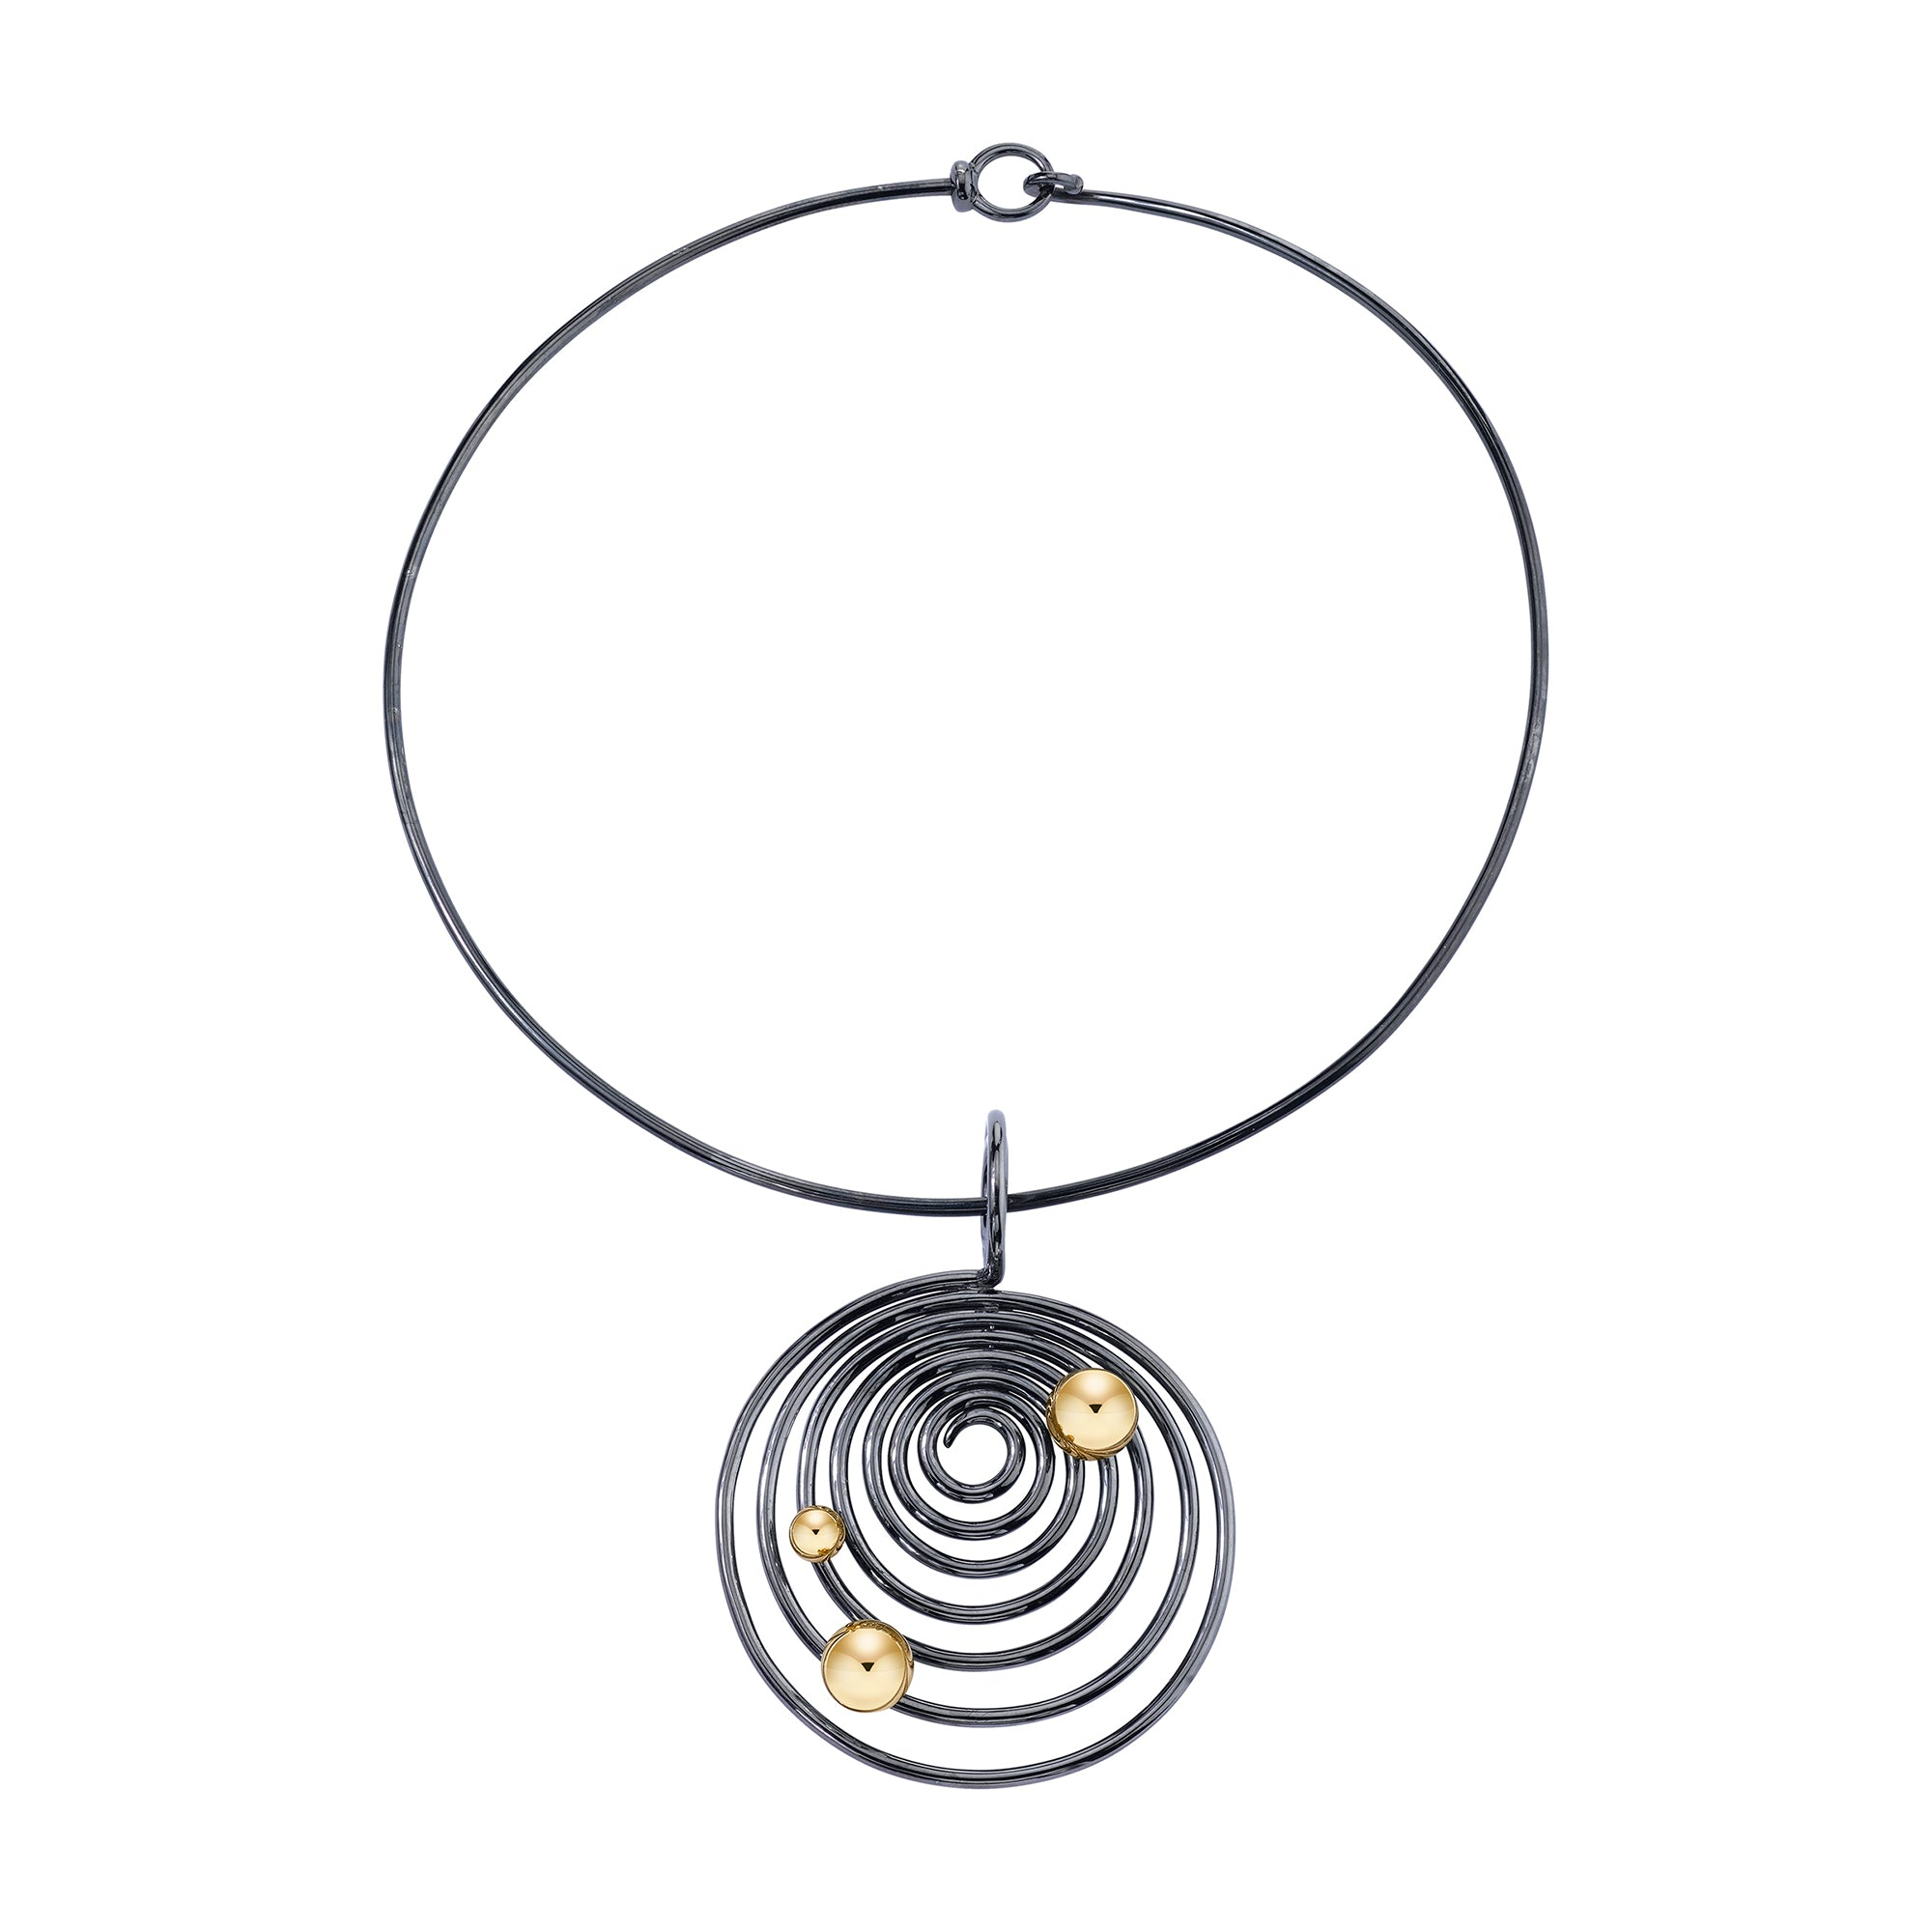 Eon Helics Necklace by VRAM for Broken English Jewelry